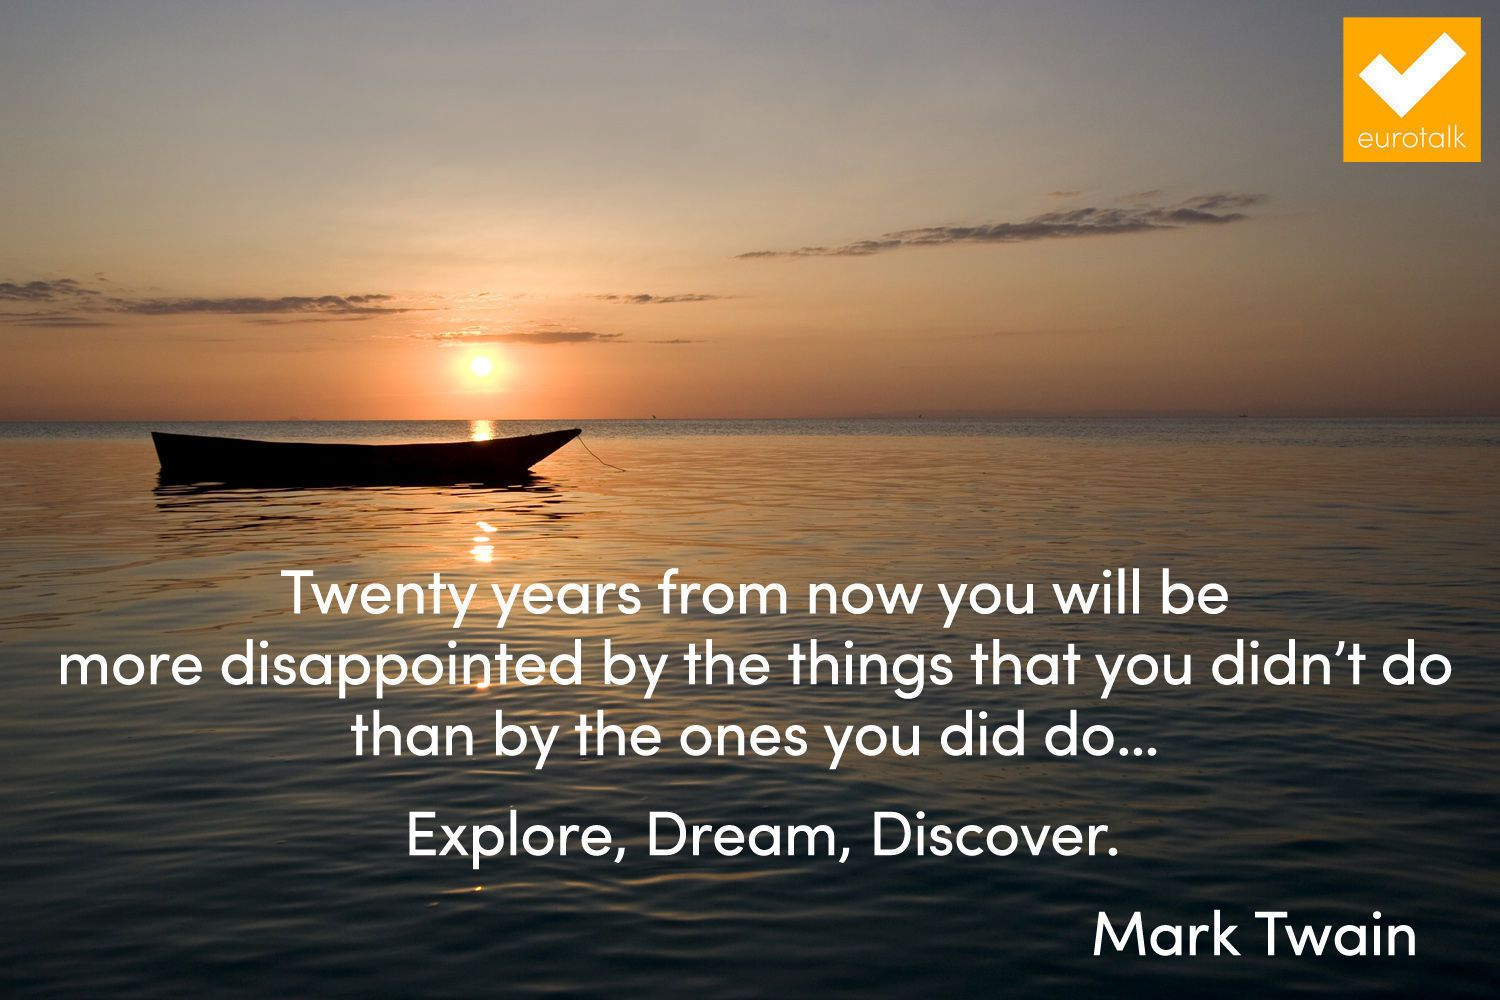 Mark Twain Quotes Quote Of The Week 2 Aug 2014  Eurotalk Blog